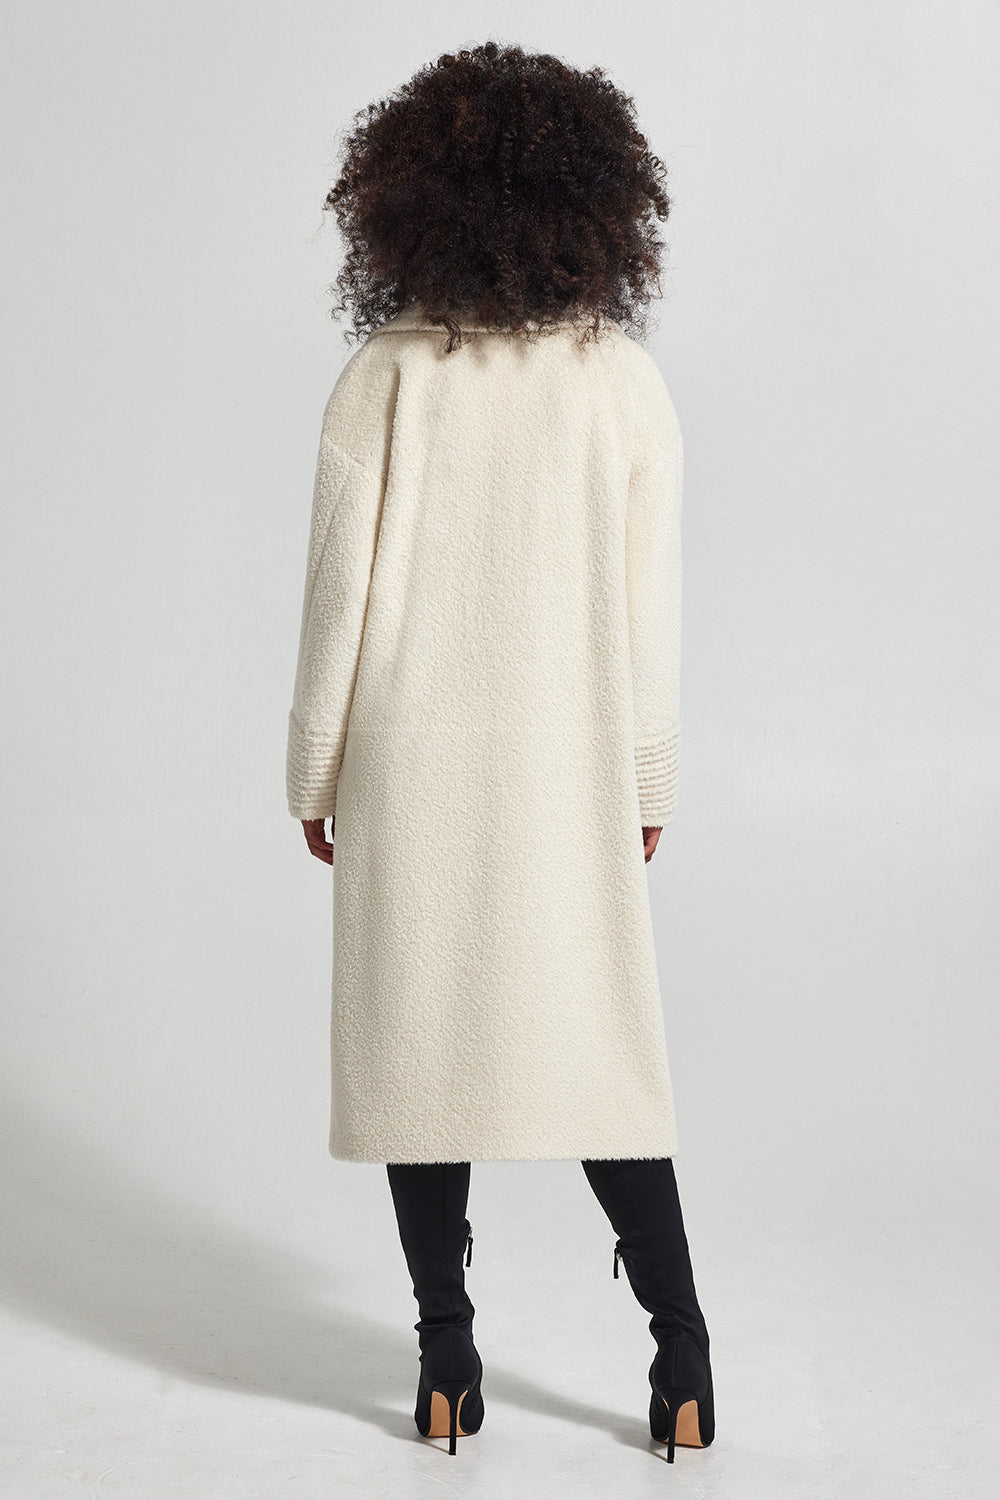 Sentaler Bouclé Alpaca Long Oversized Notched Collar Coat featured in Bouclé Alpaca and available in Ivory. Seen from back.